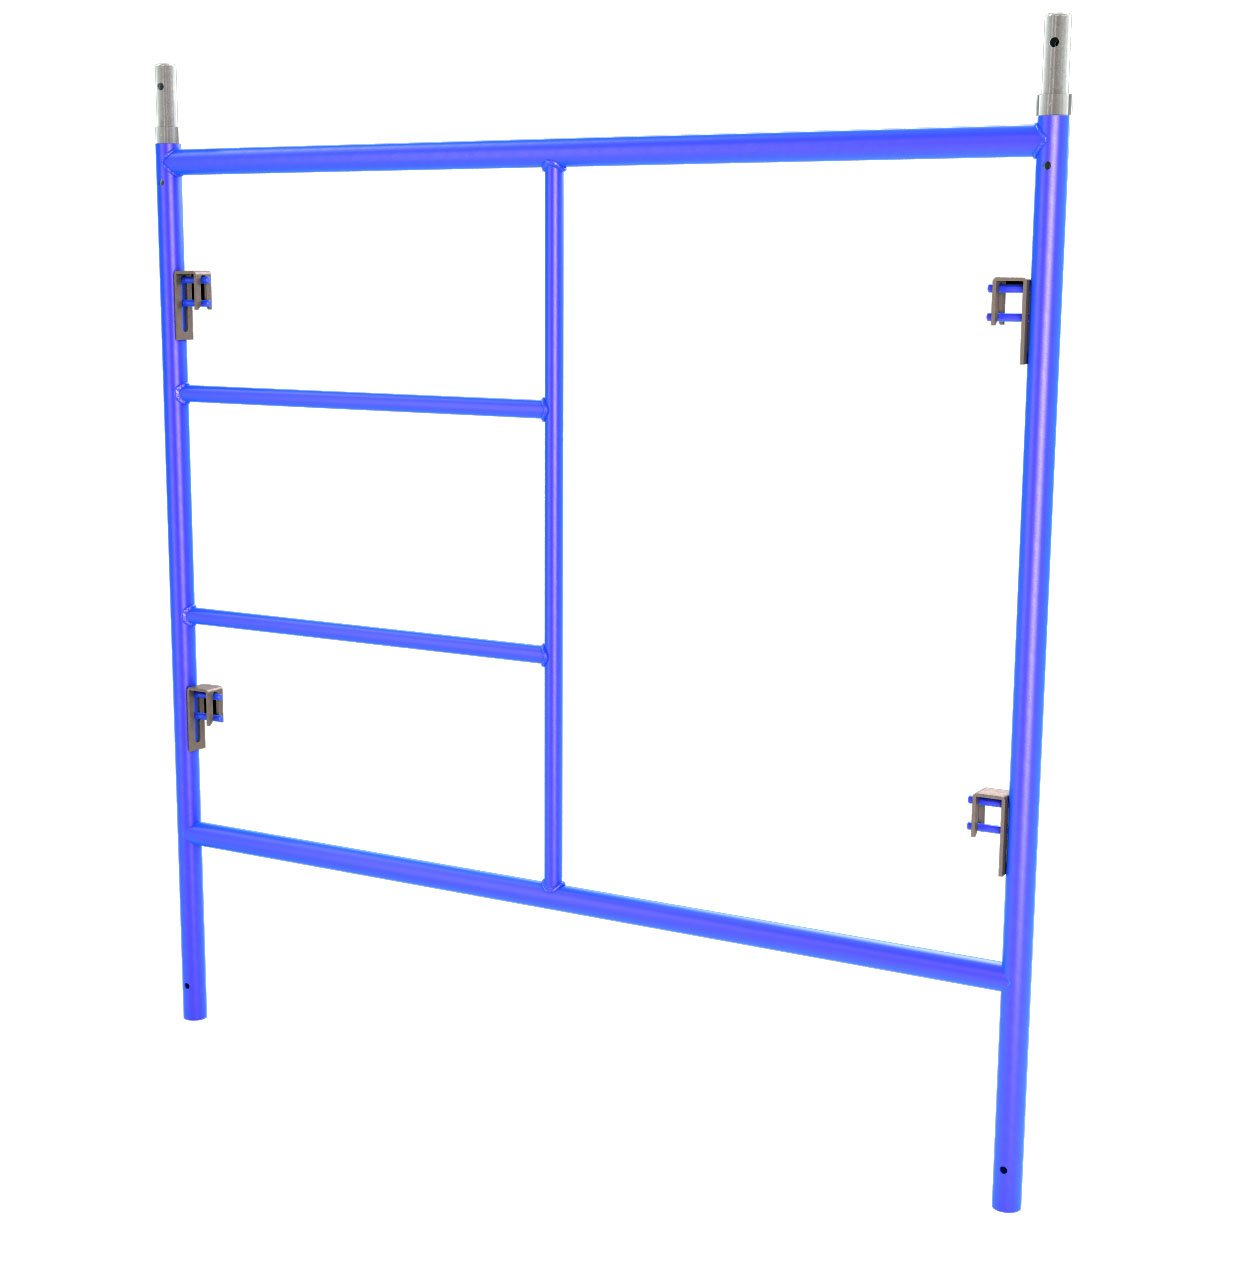 Bon 14-202 Step Type Scaffold End Frame, 5-Feet High, 5-Feet Wide, Made in USA by BON